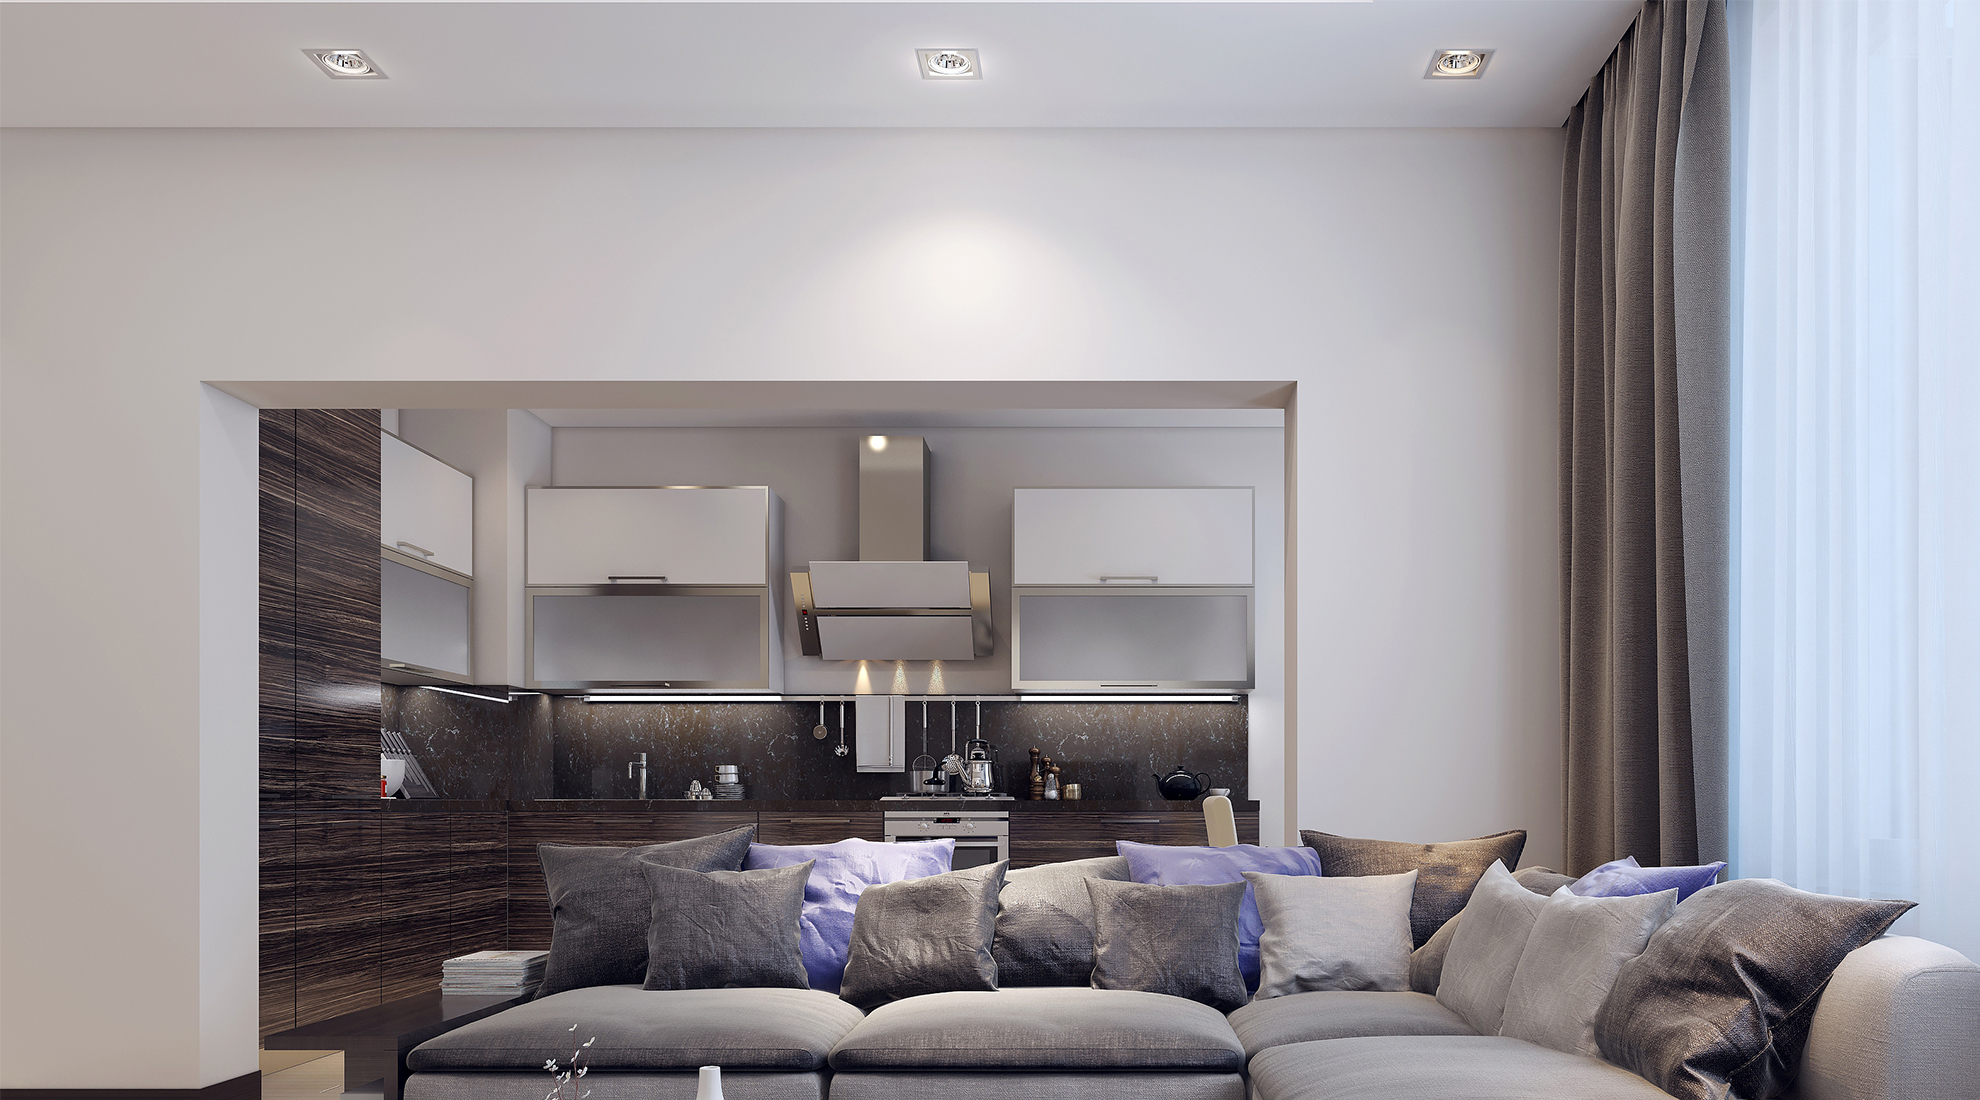 best recessed lighting for living room couch ideas guide how to buy at lumens com choose